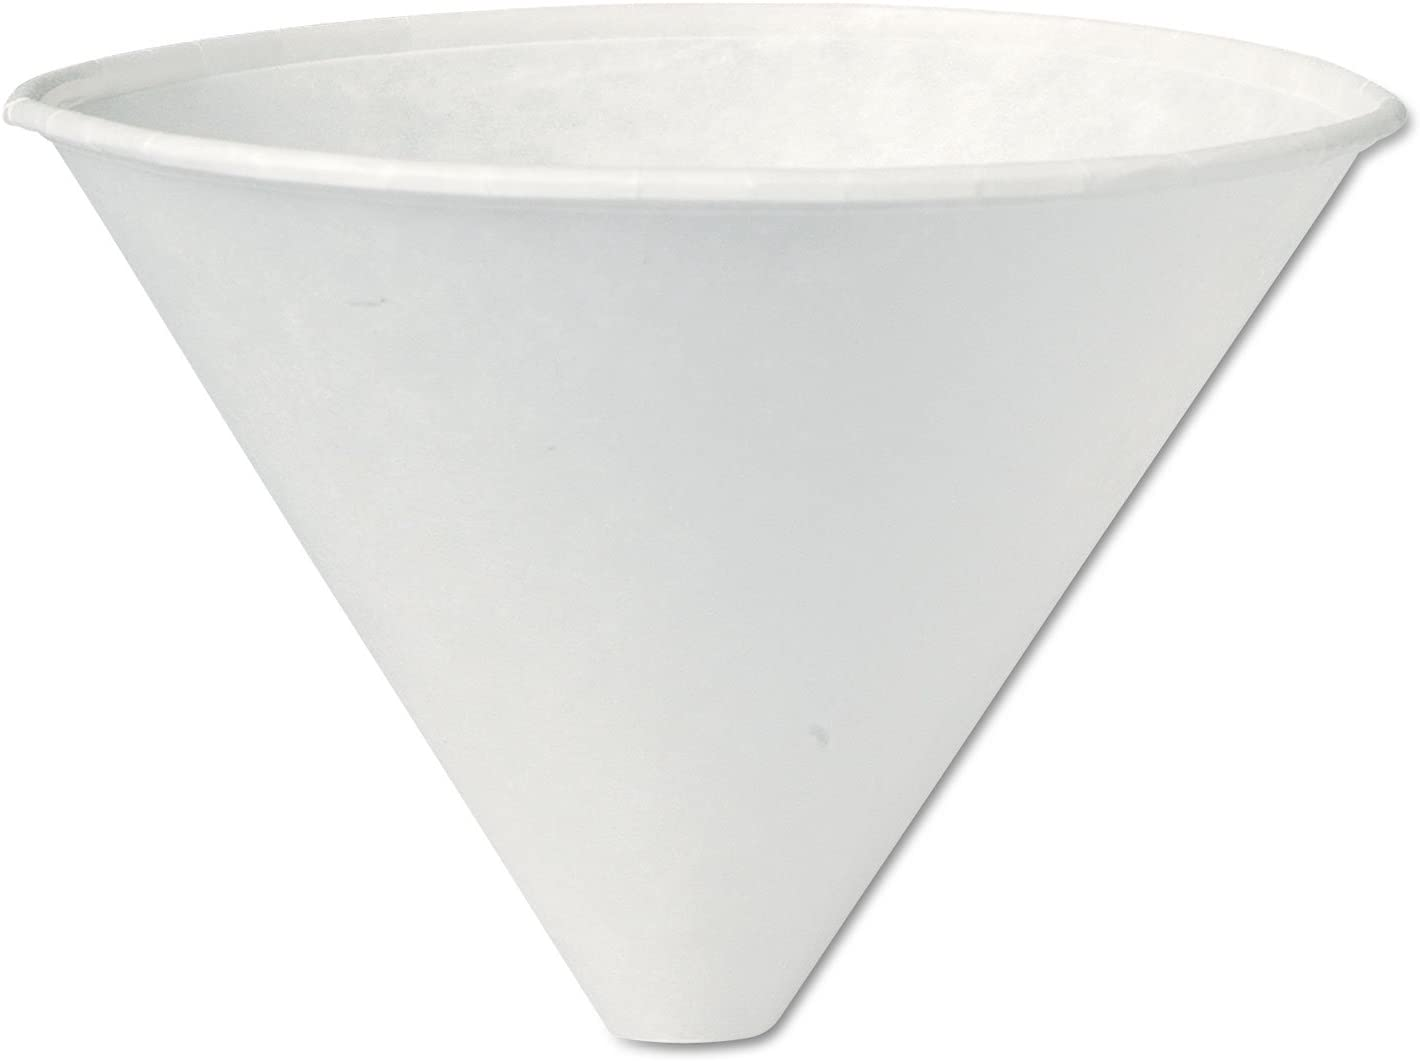 SCC6SRX - Funnel-Shaped Medical amp; Paper Ranking TOP19 Max 67% OFF Treated Cups Dental